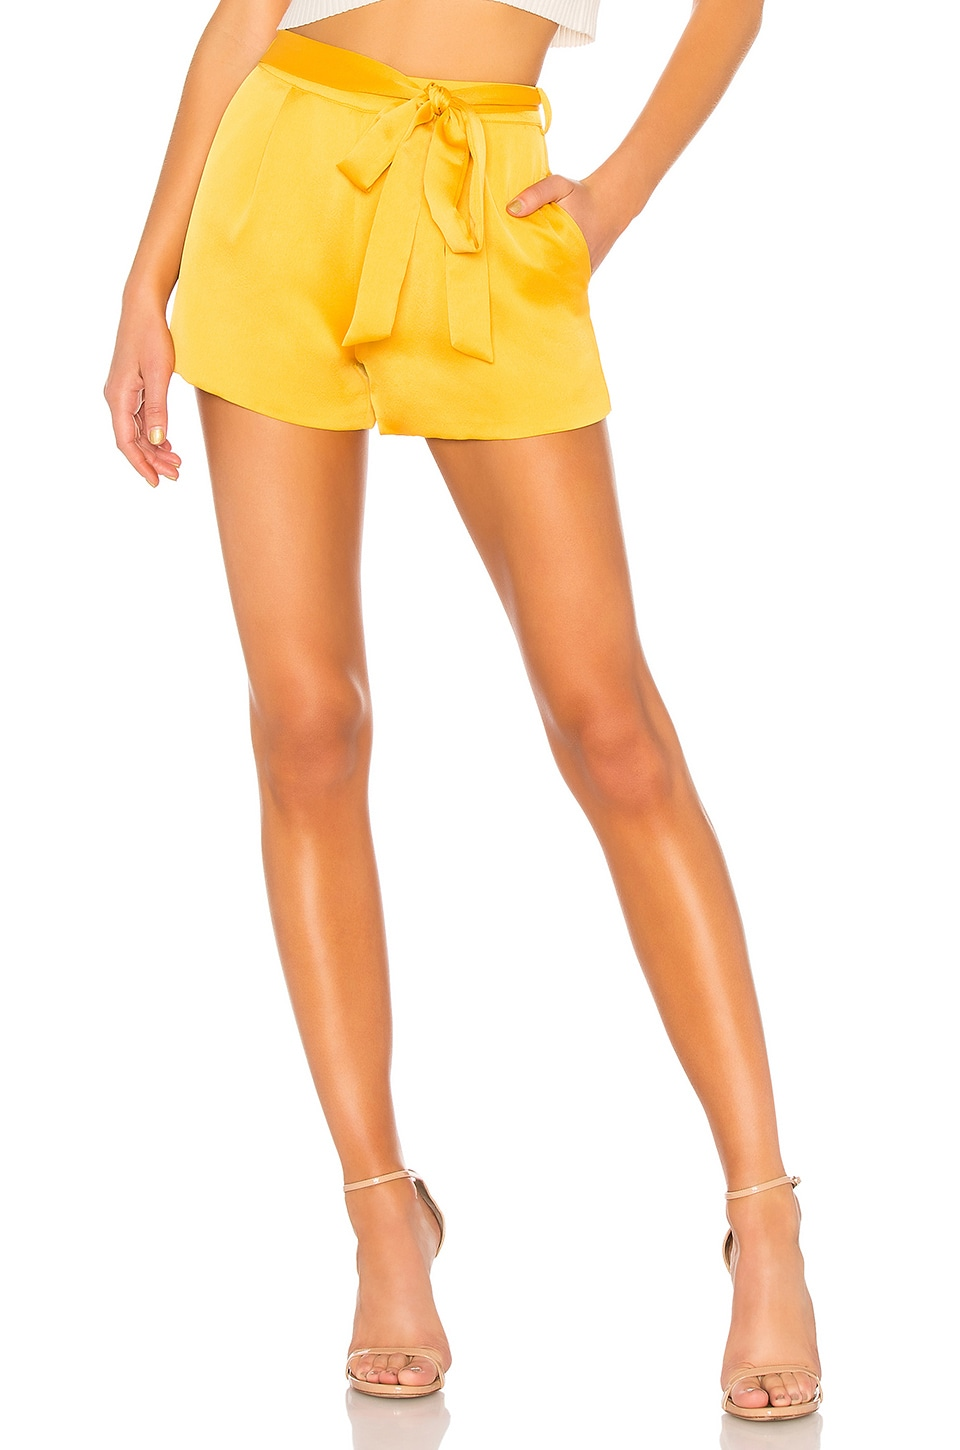 L'Academie The Londyn Short in Mustard Yellow